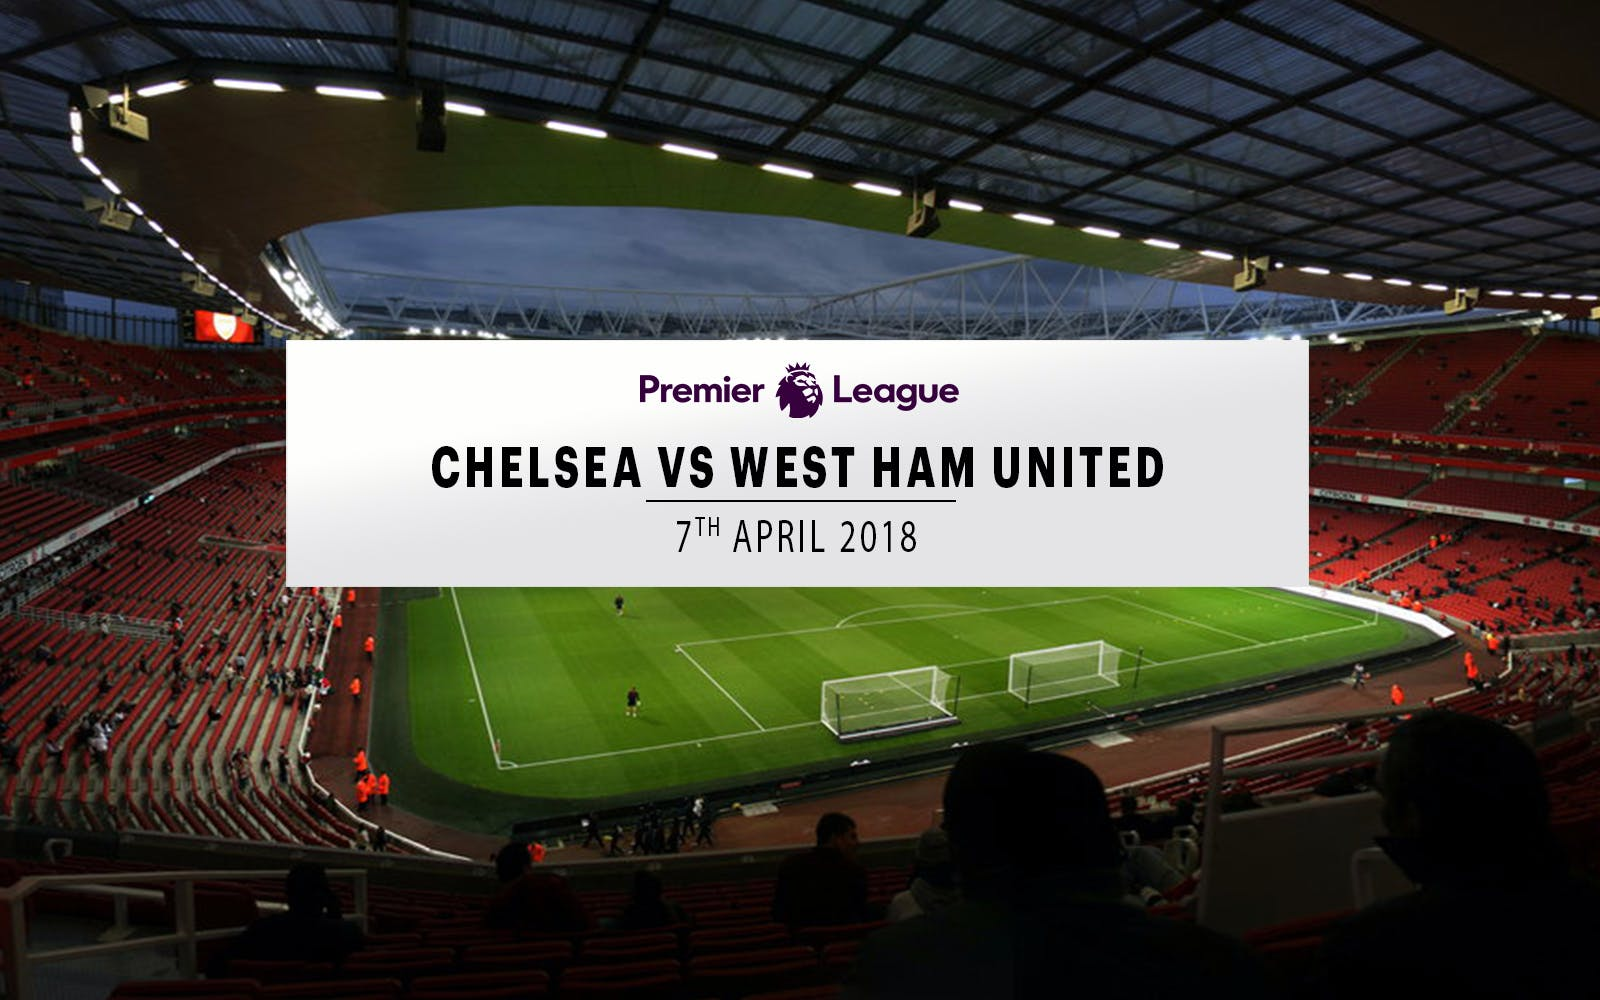 chelsea vs west ham united - 7th april 2018-1